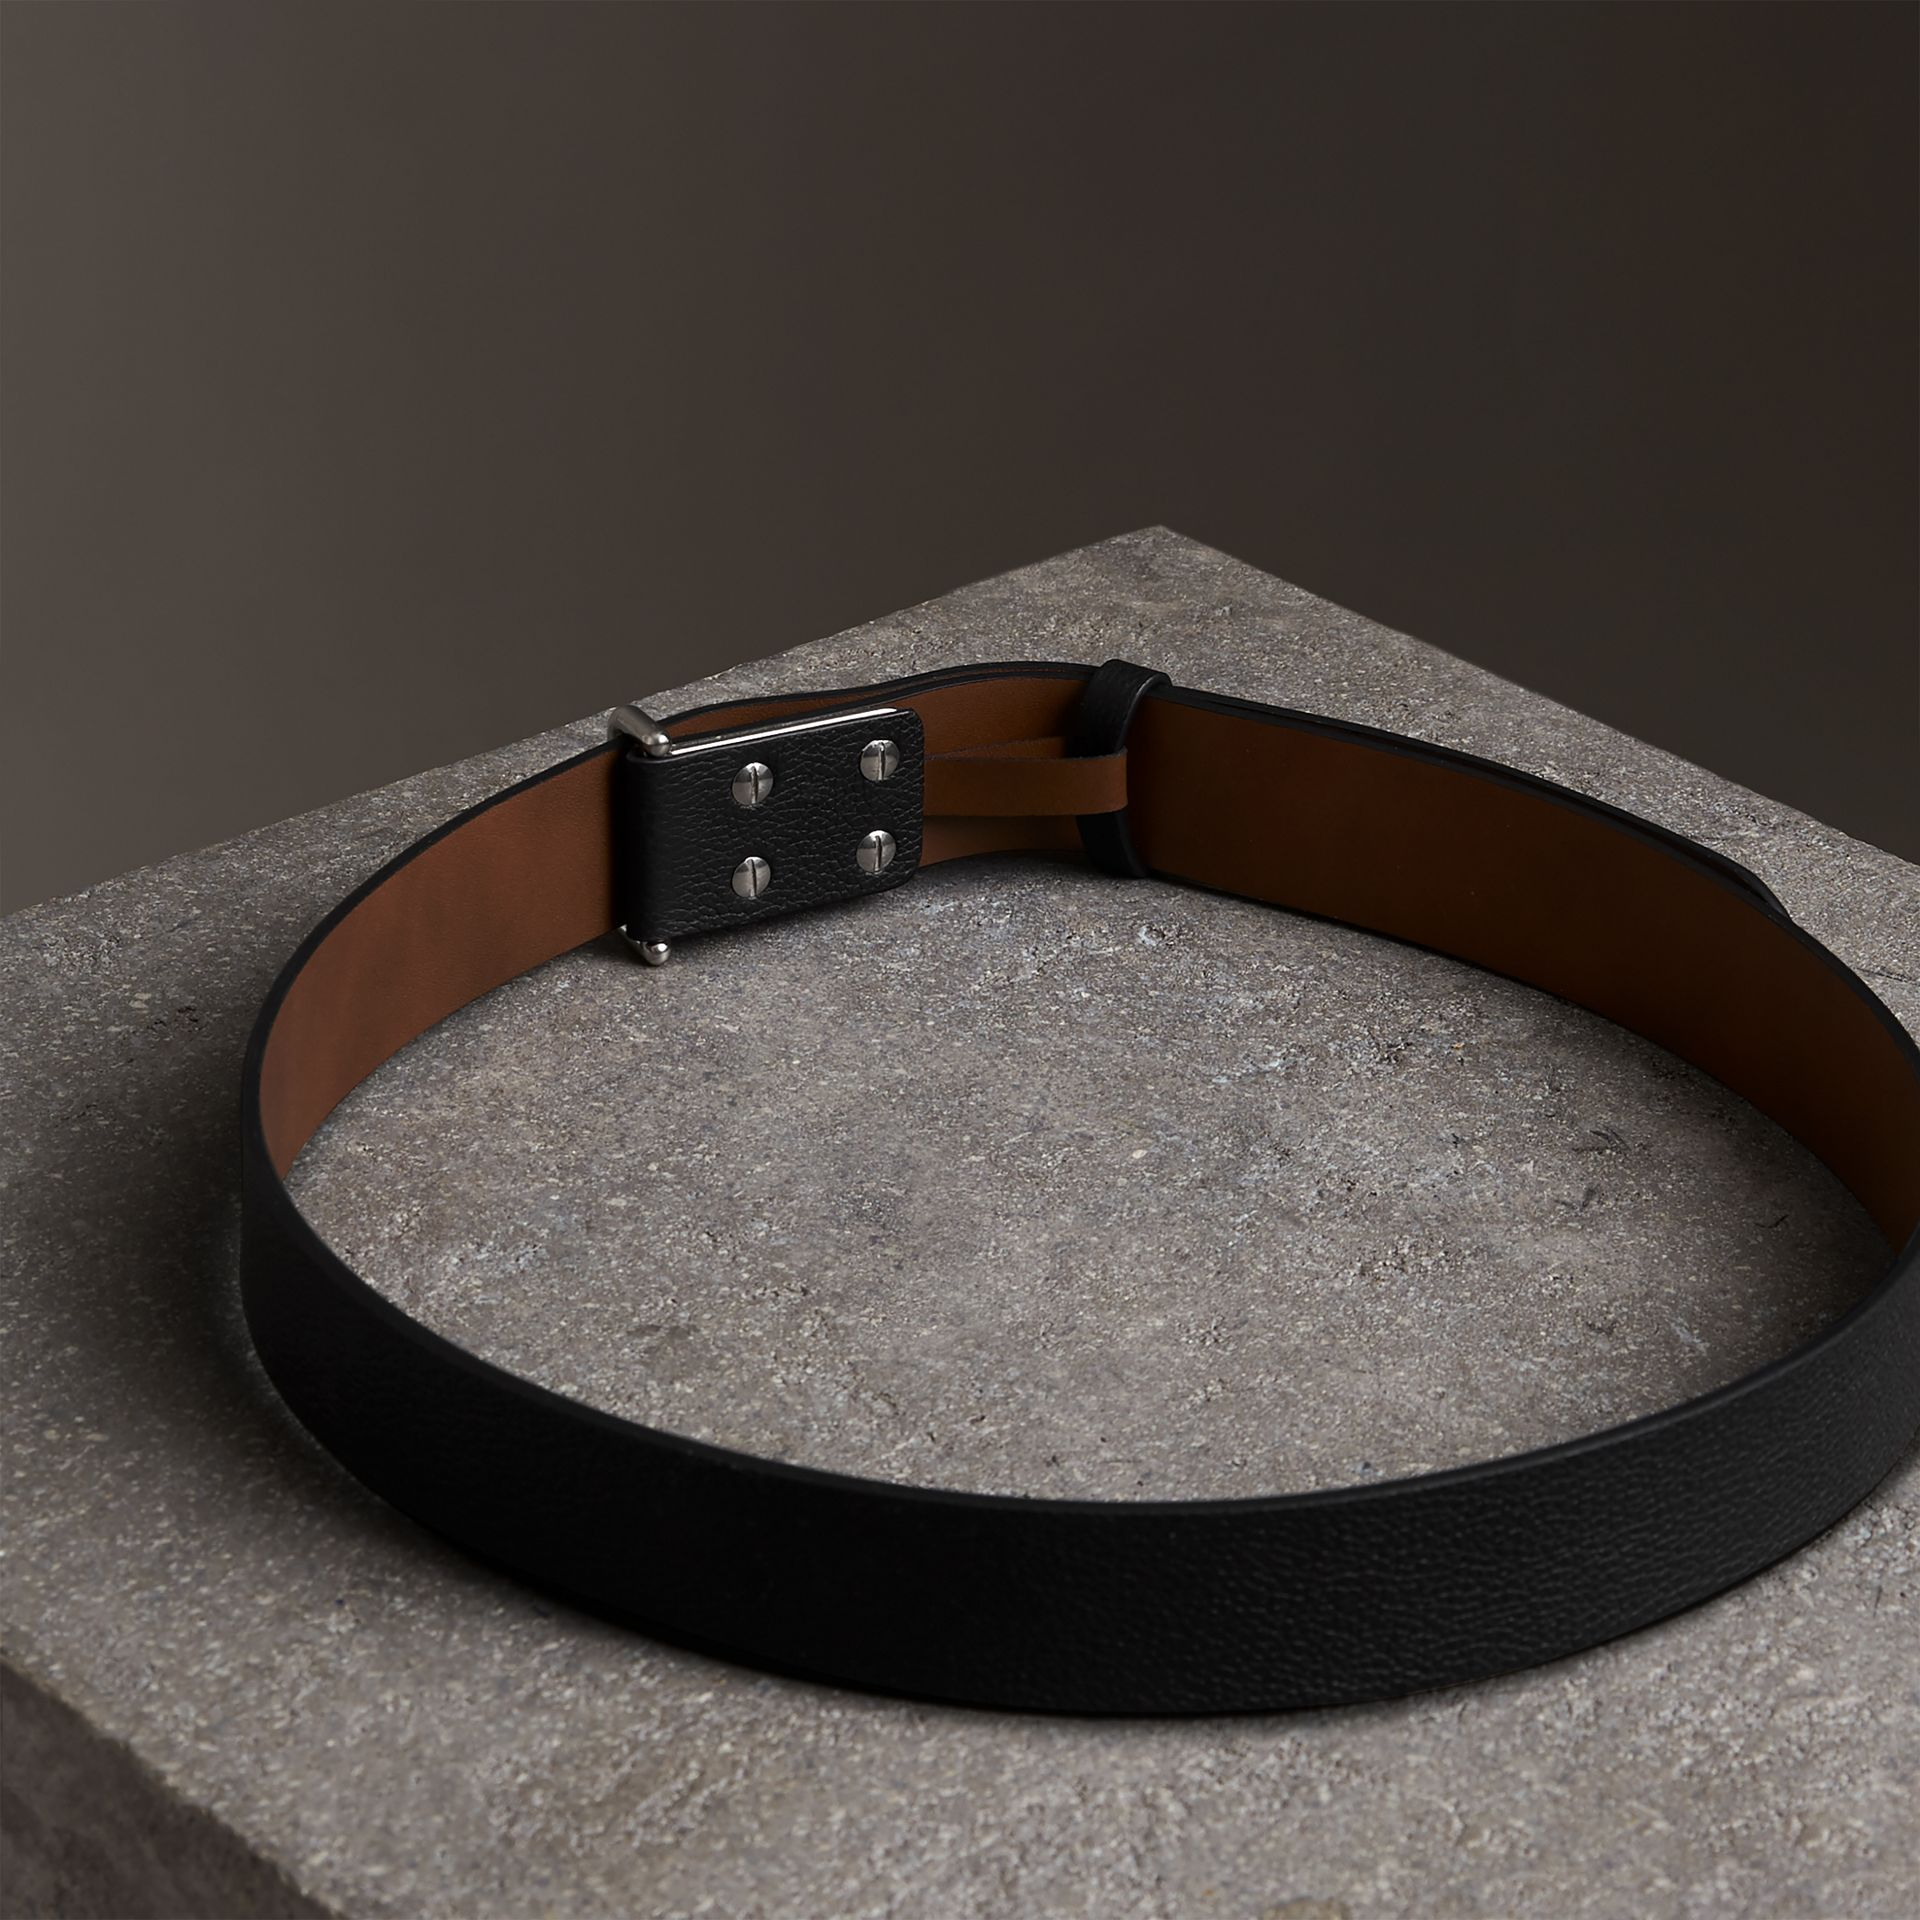 Push-Stud Grainy Leather Belt in Black - Men | Burberry United Kingdom - gallery image 3